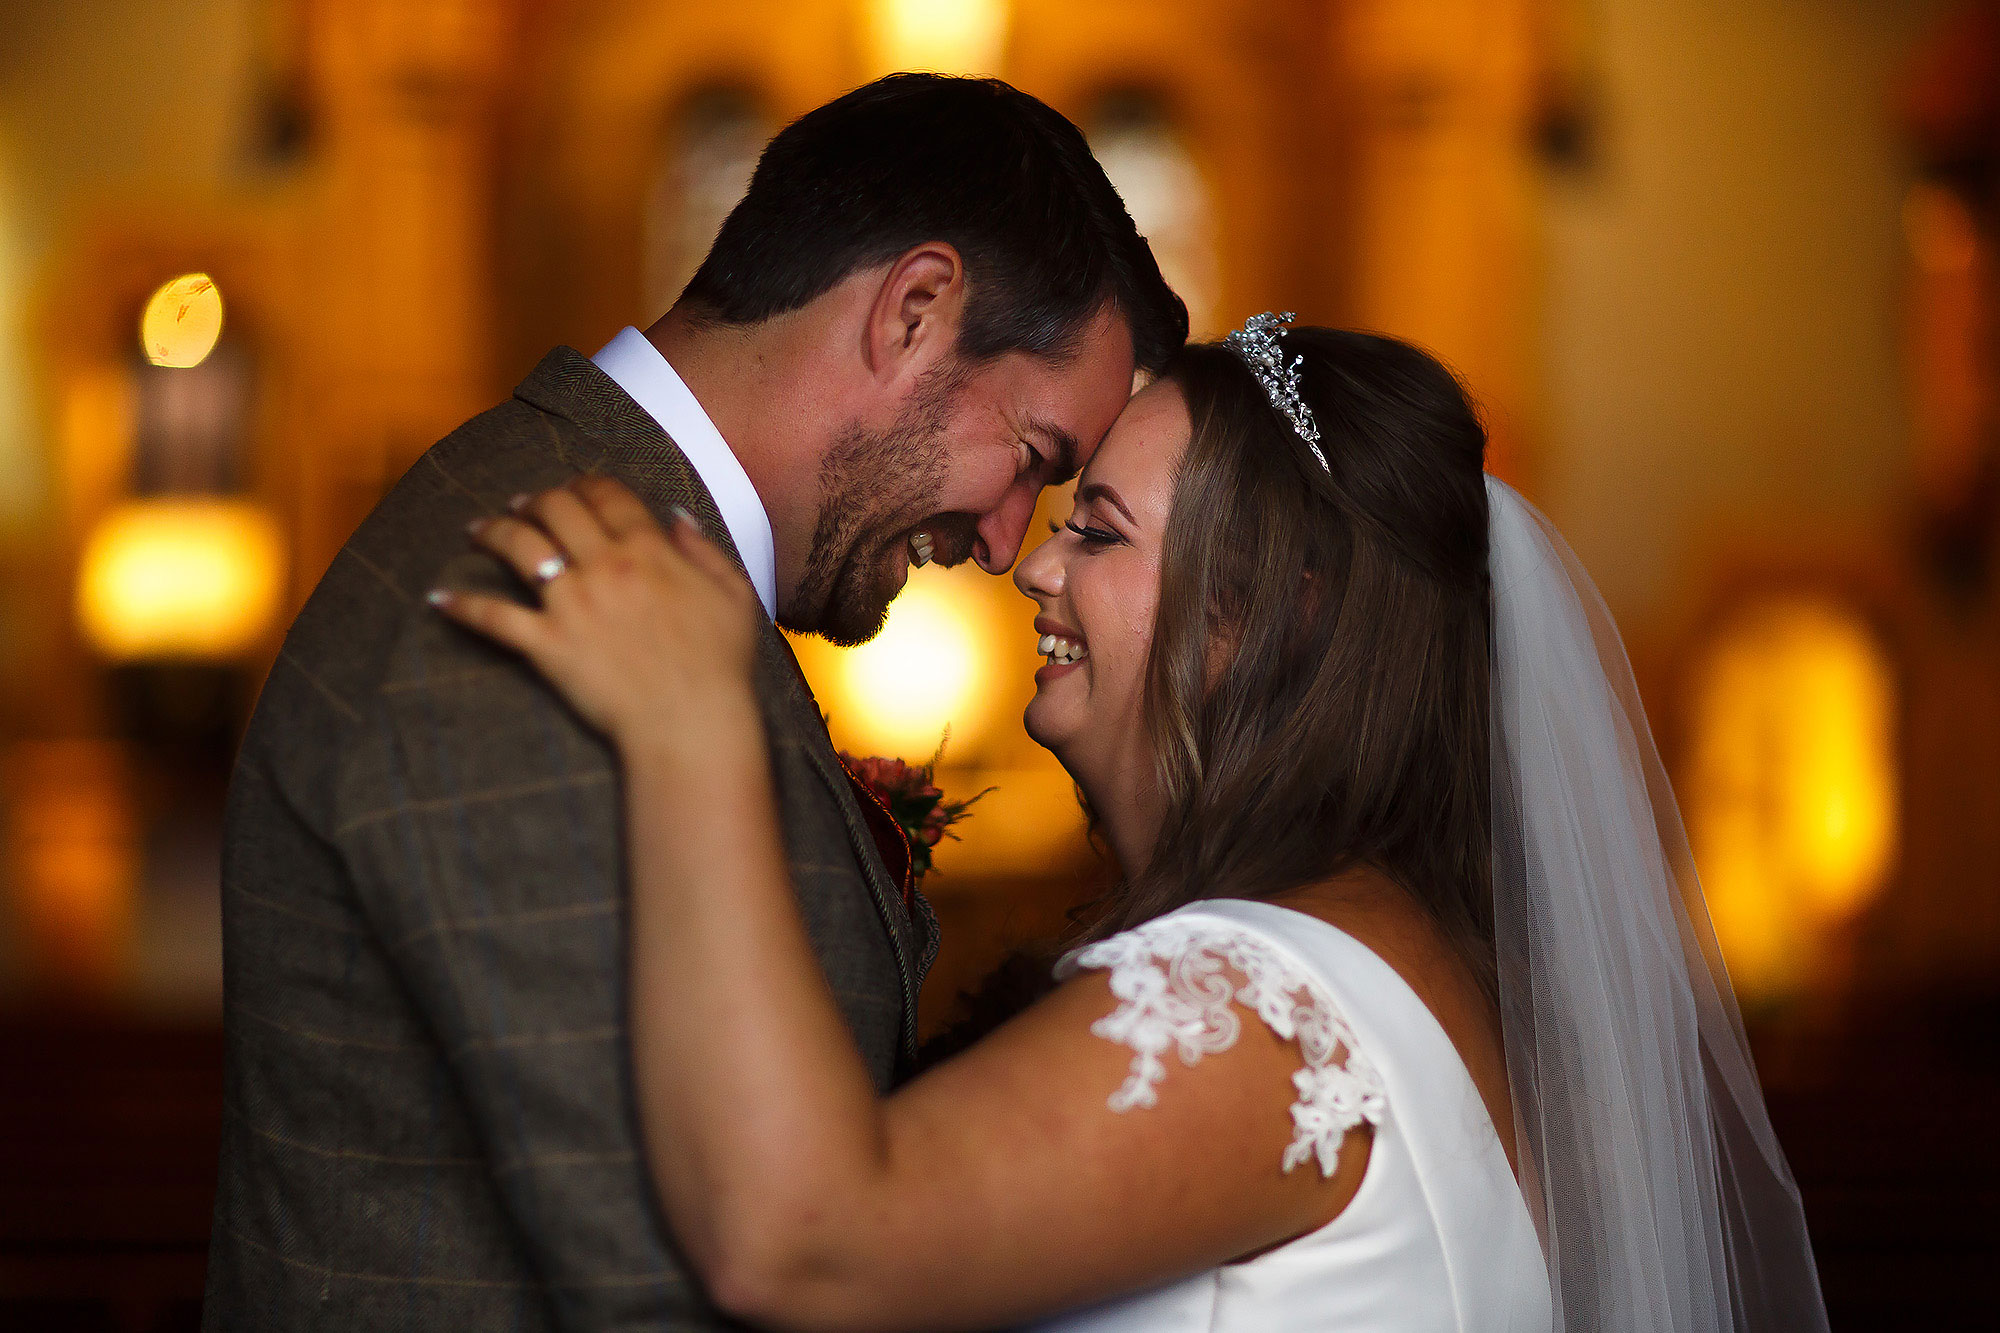 Bride with brunette hair and capped sleeved wedding dress touching forehead with her tall groom inside church with warm lights and candles behind | Wellbeing Farm wedding photographs by Toni Darcy Photography